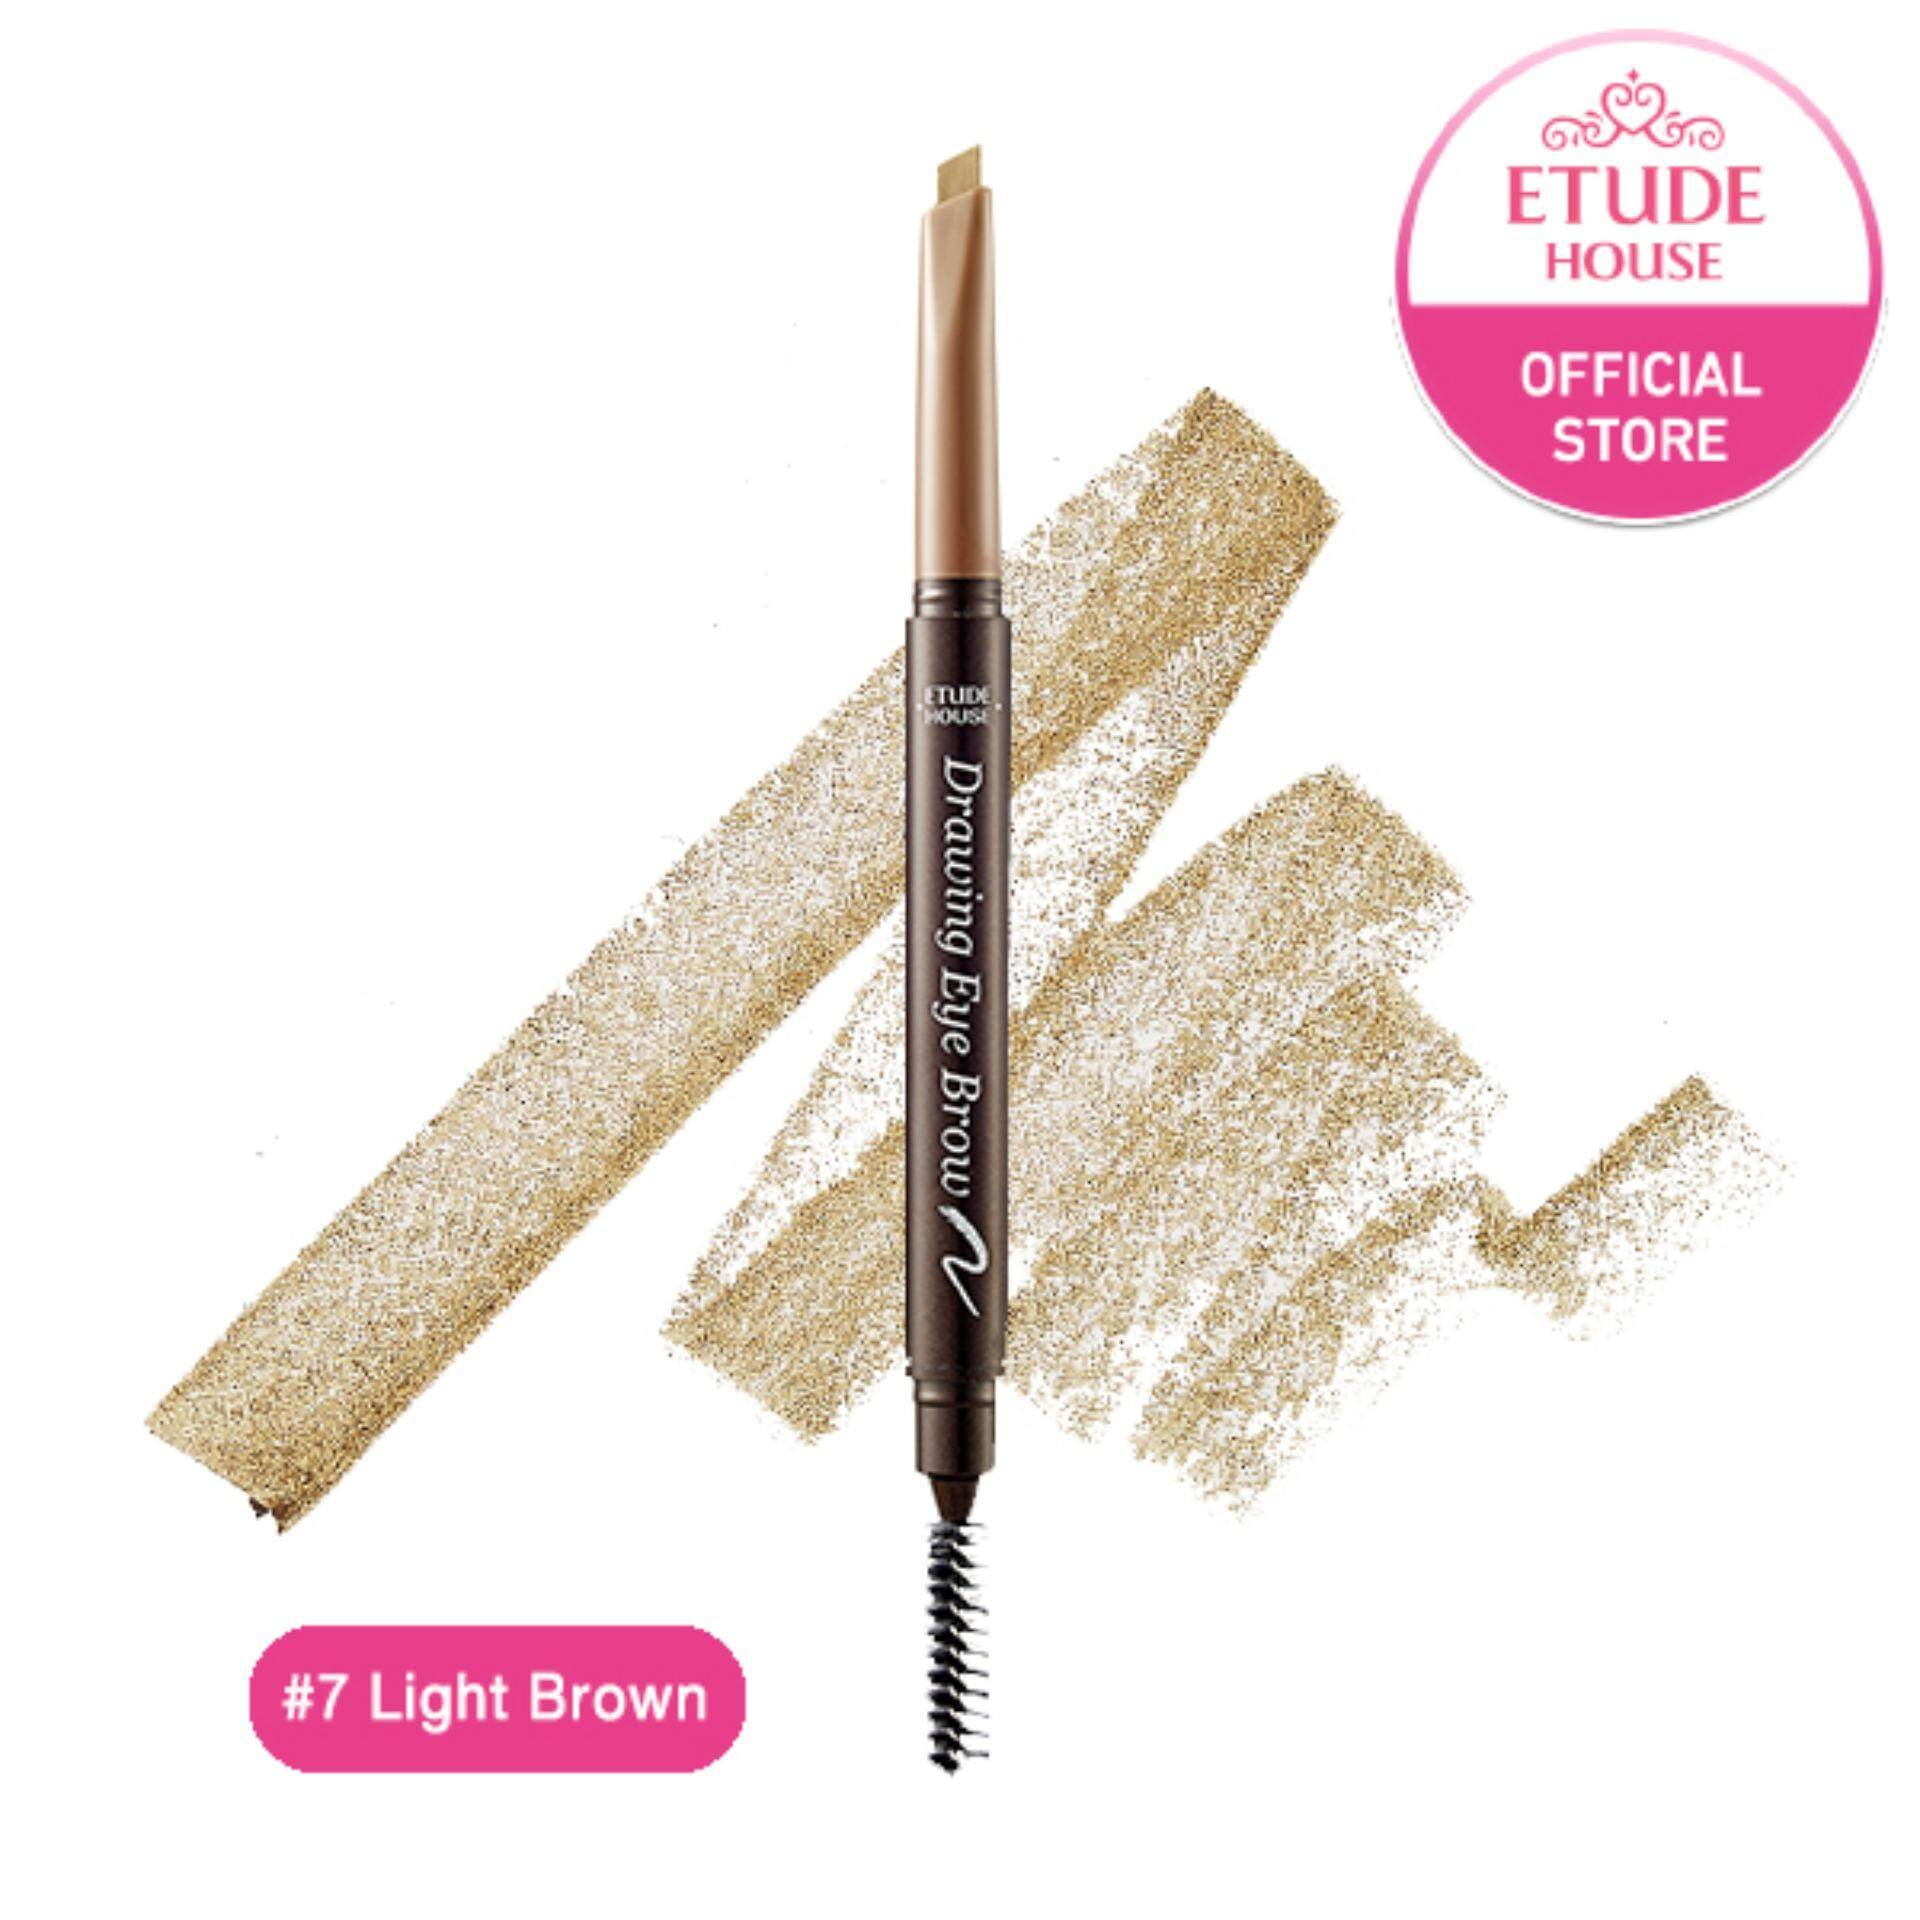 ETUDE HOUSE Drawing Eye Brow #3 Brown